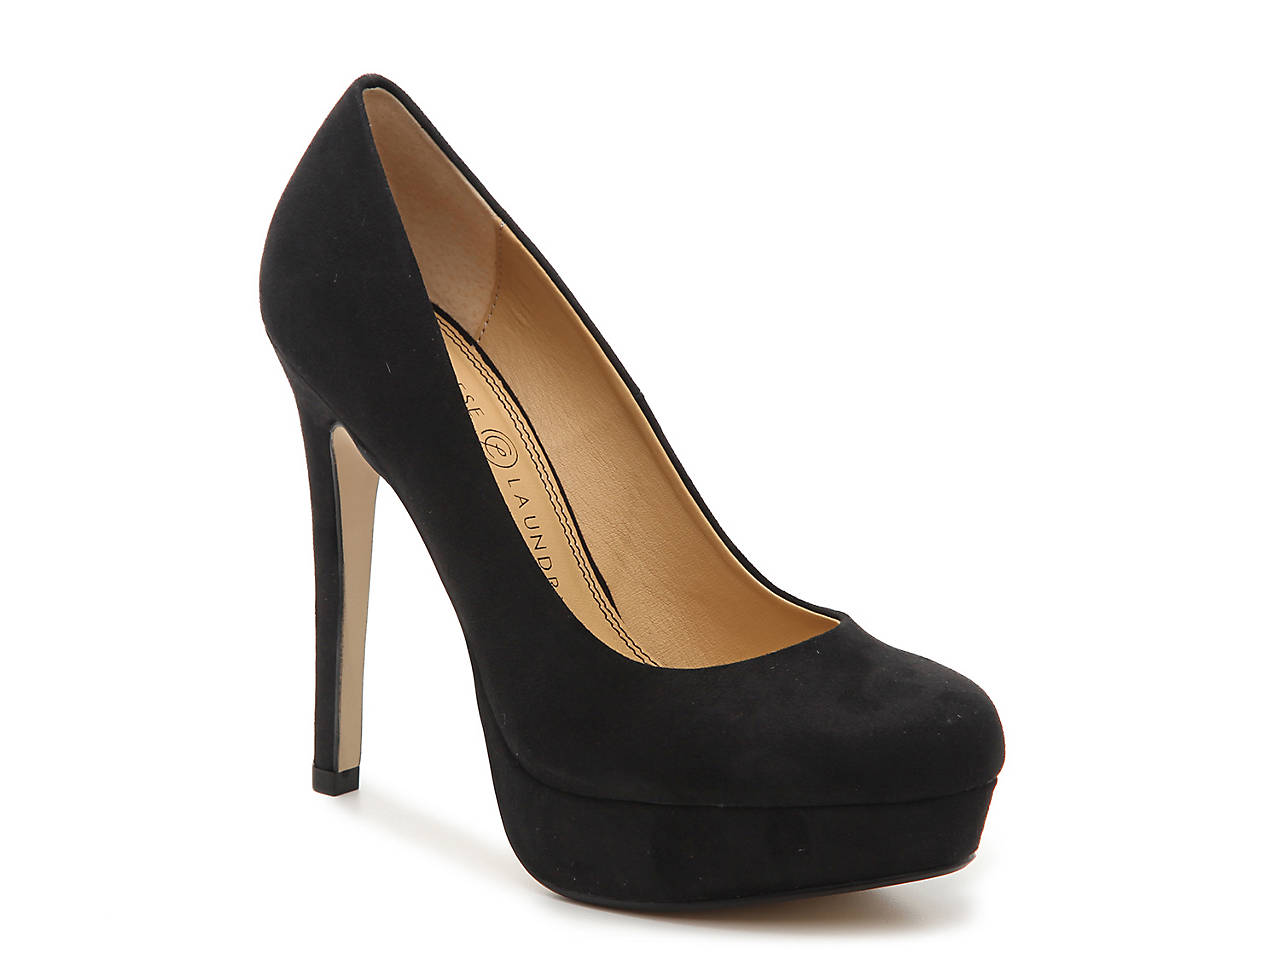 Payless Shoes Round Toe Platform Pumps